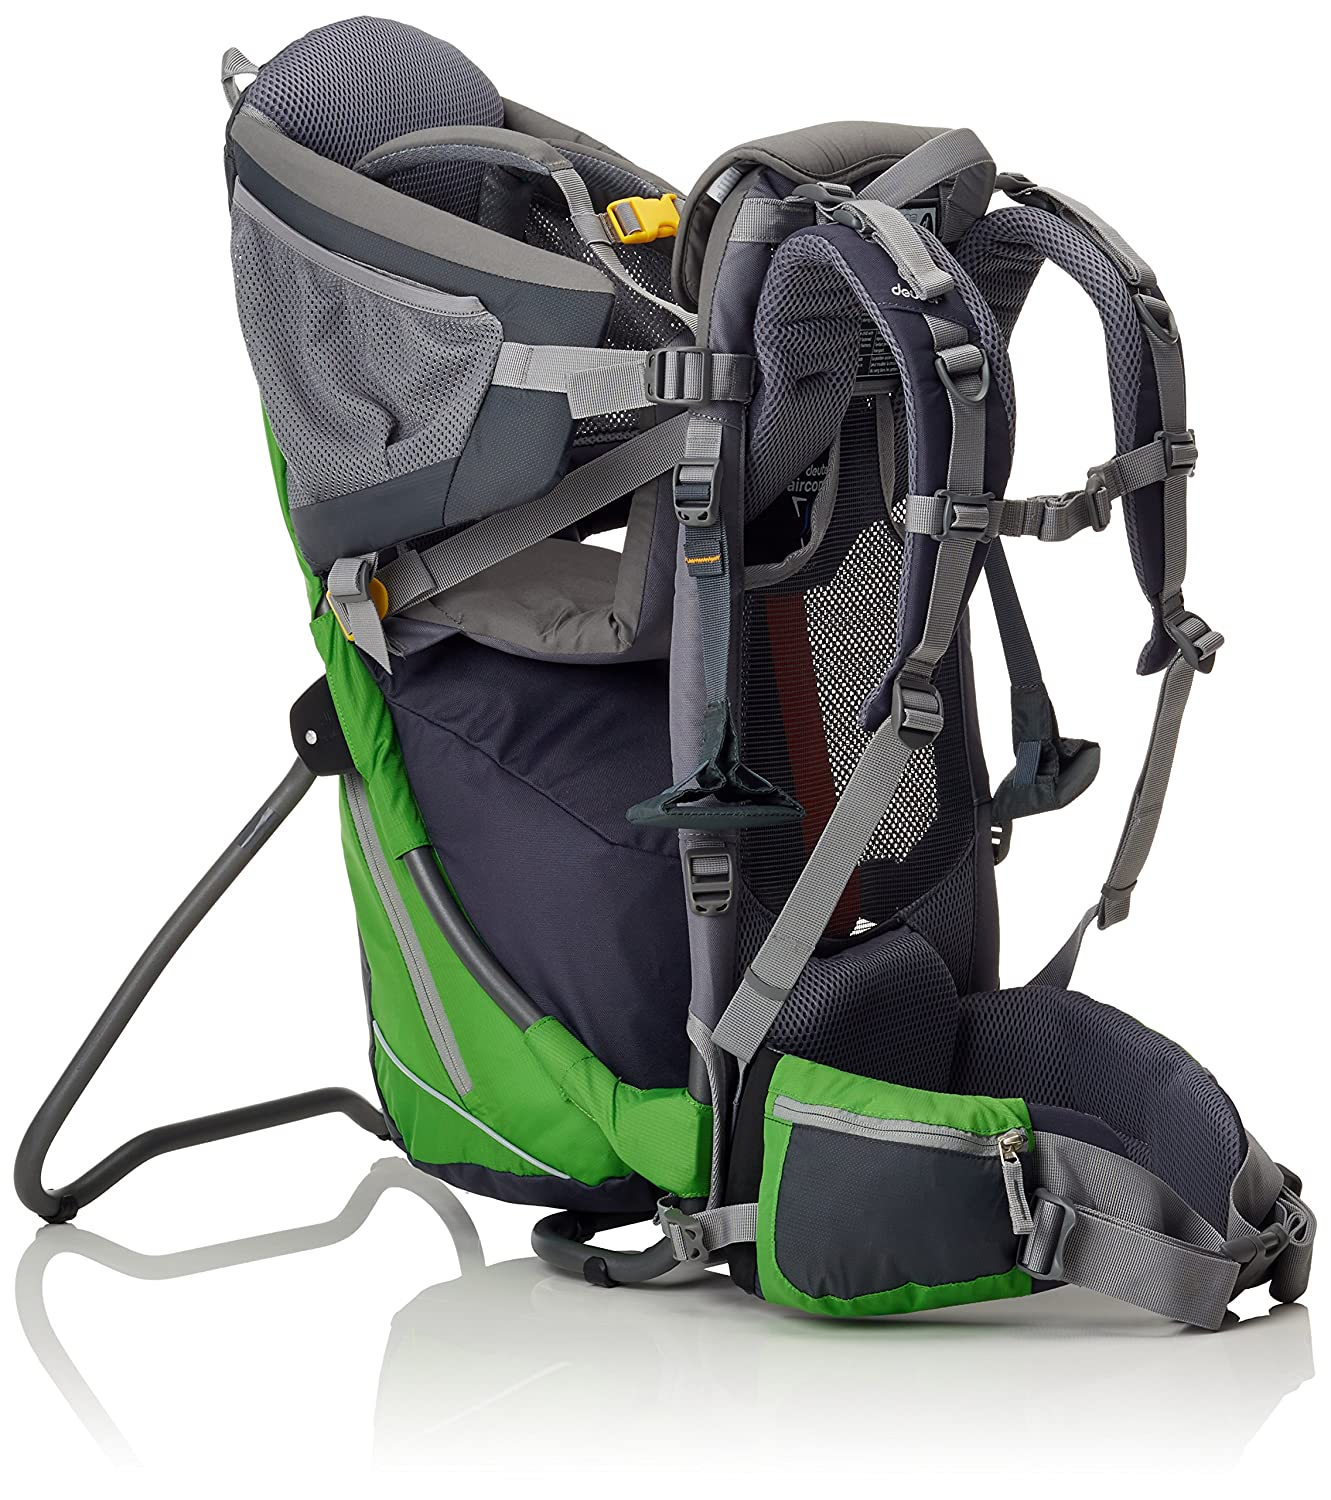 Deuter Kids Outdoor Backpack available in Graphite Spring e